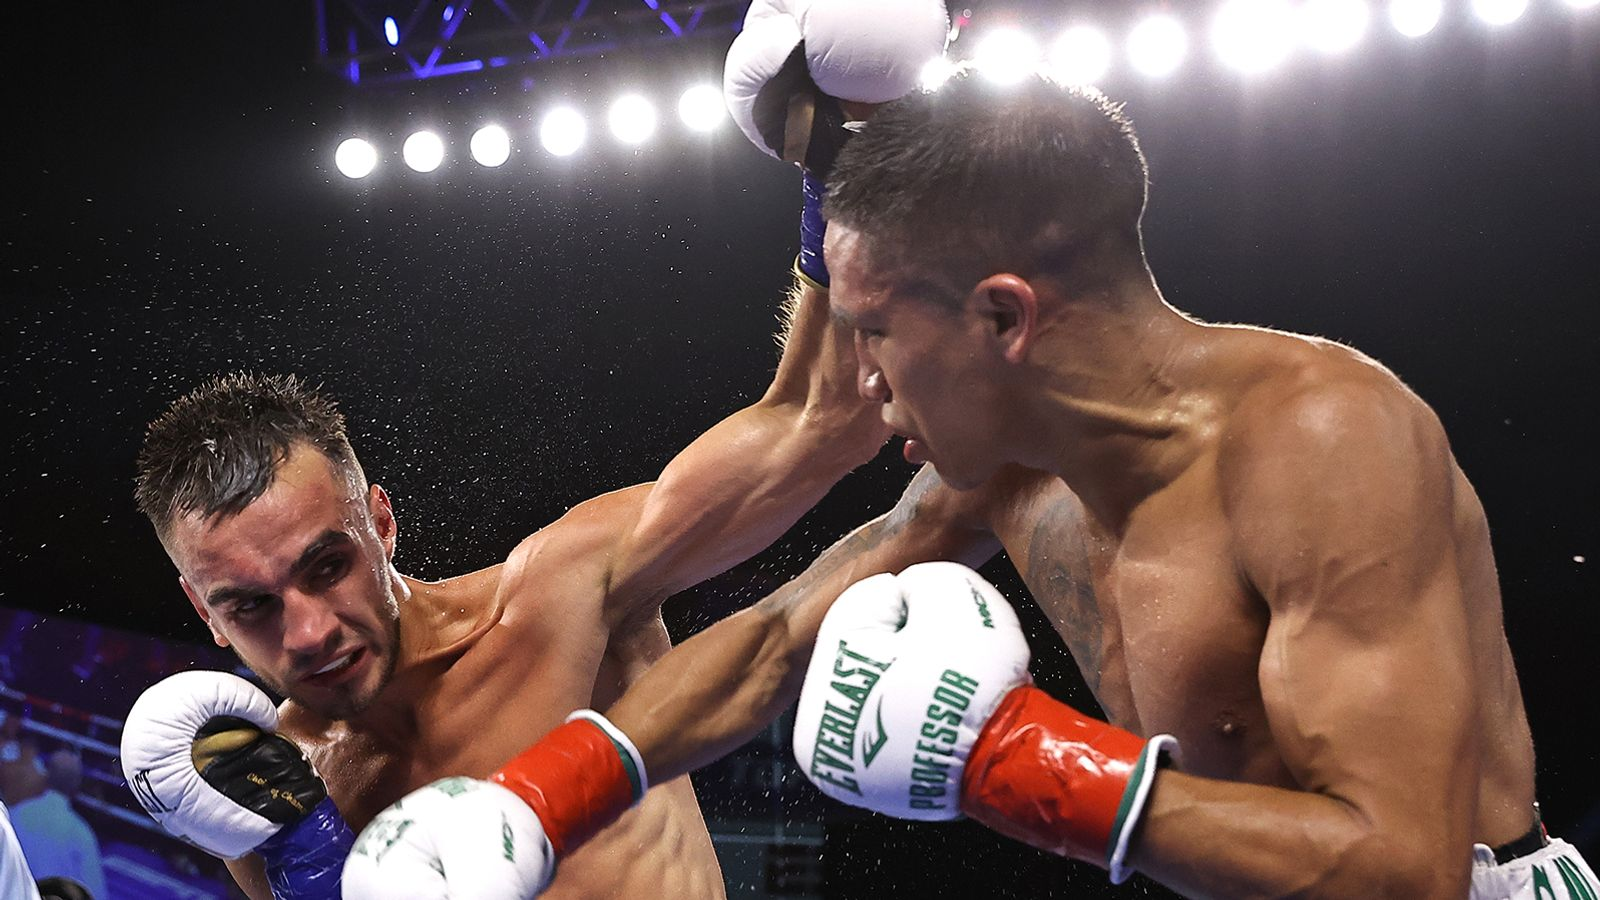 After the 'headbutt' scandal, Joshua Franco defeats Andrew Moloney in a trilogy fight to put an end to their feud.